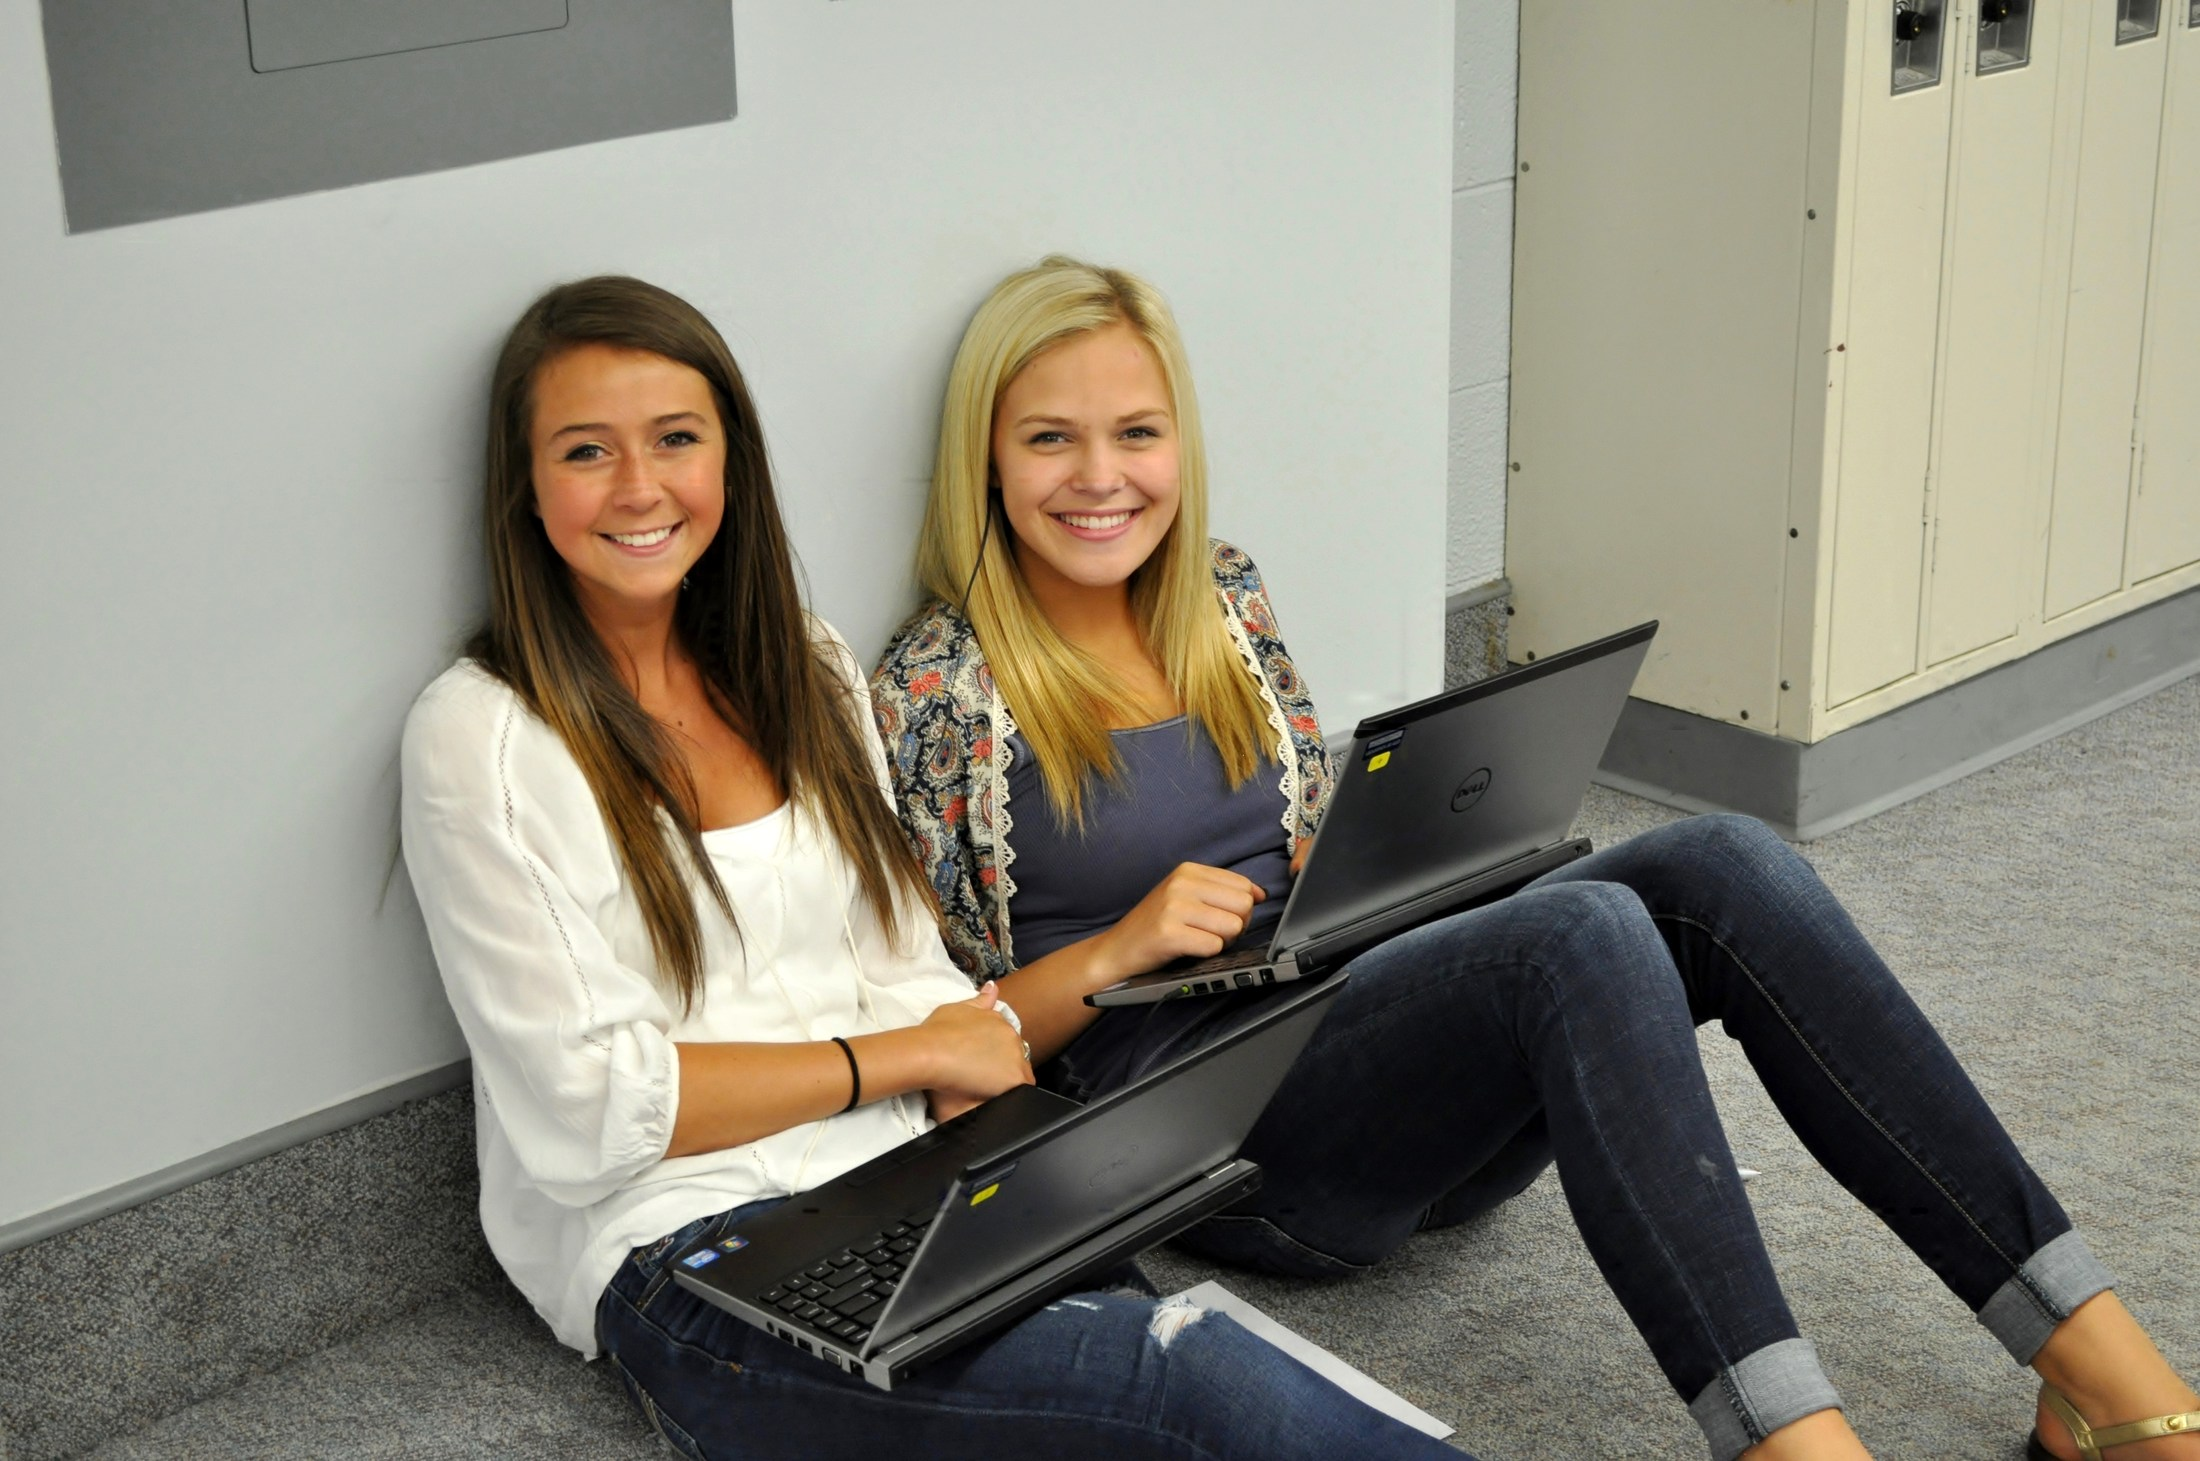 Students working on laptops